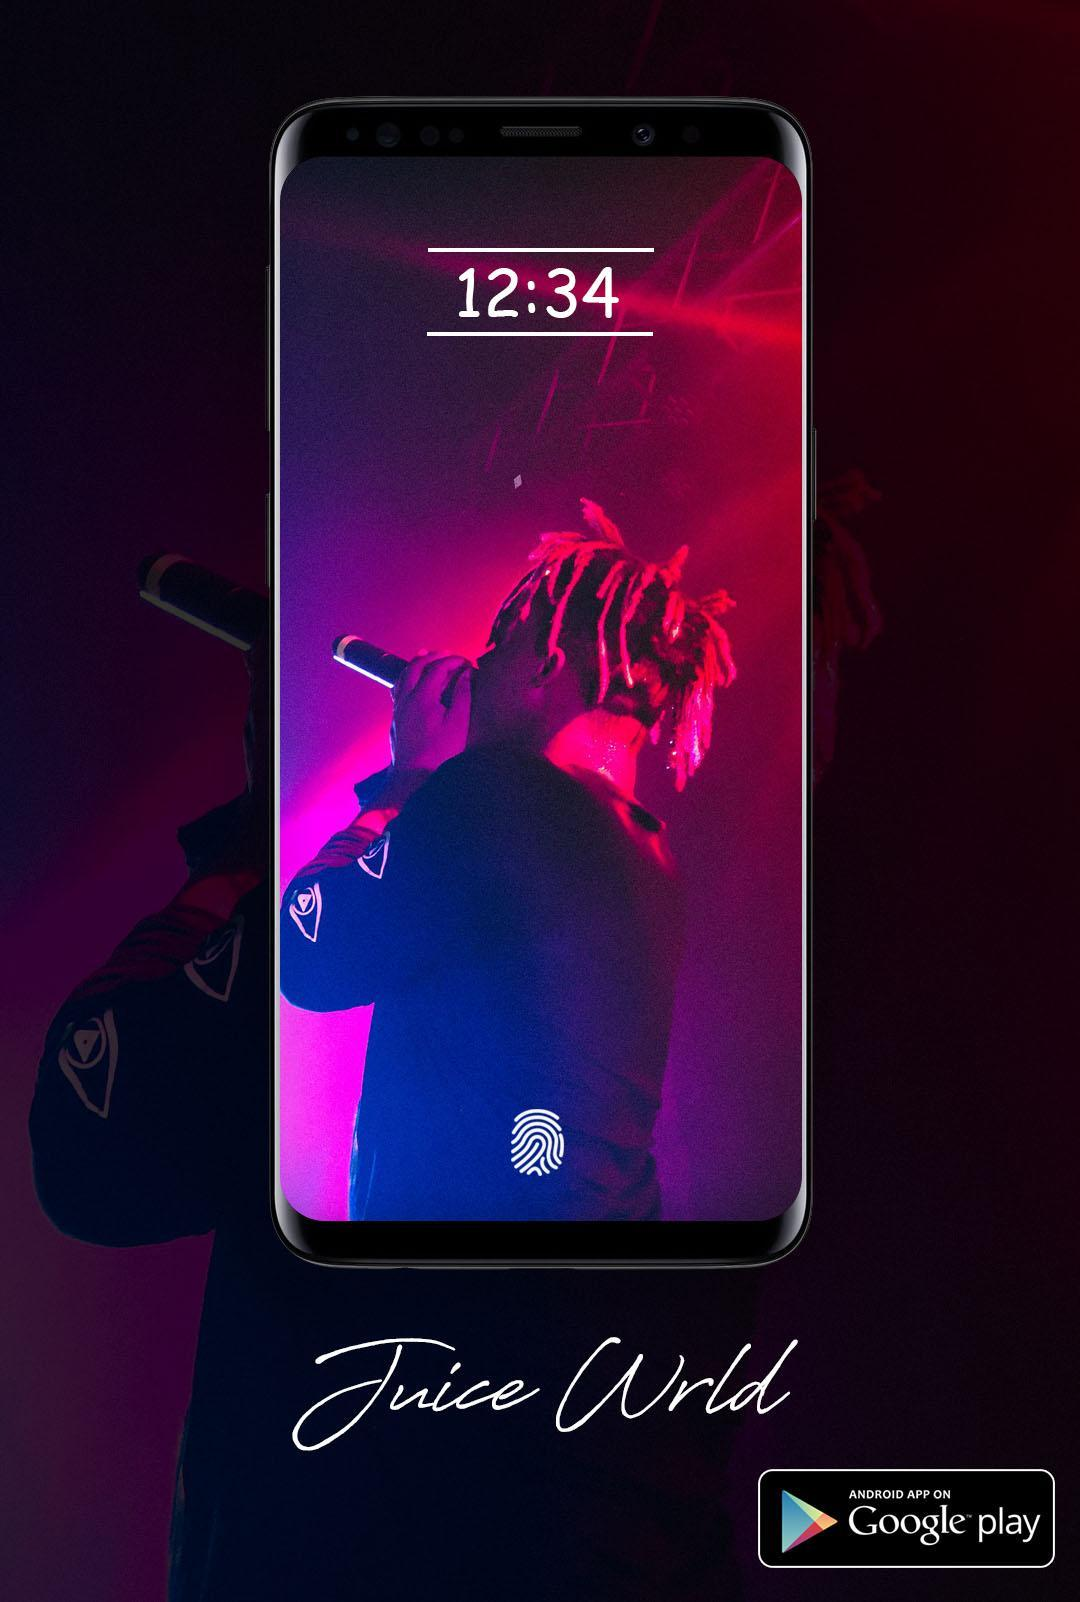 Juice Wrld Wallpaper Hd For Android Apk Download